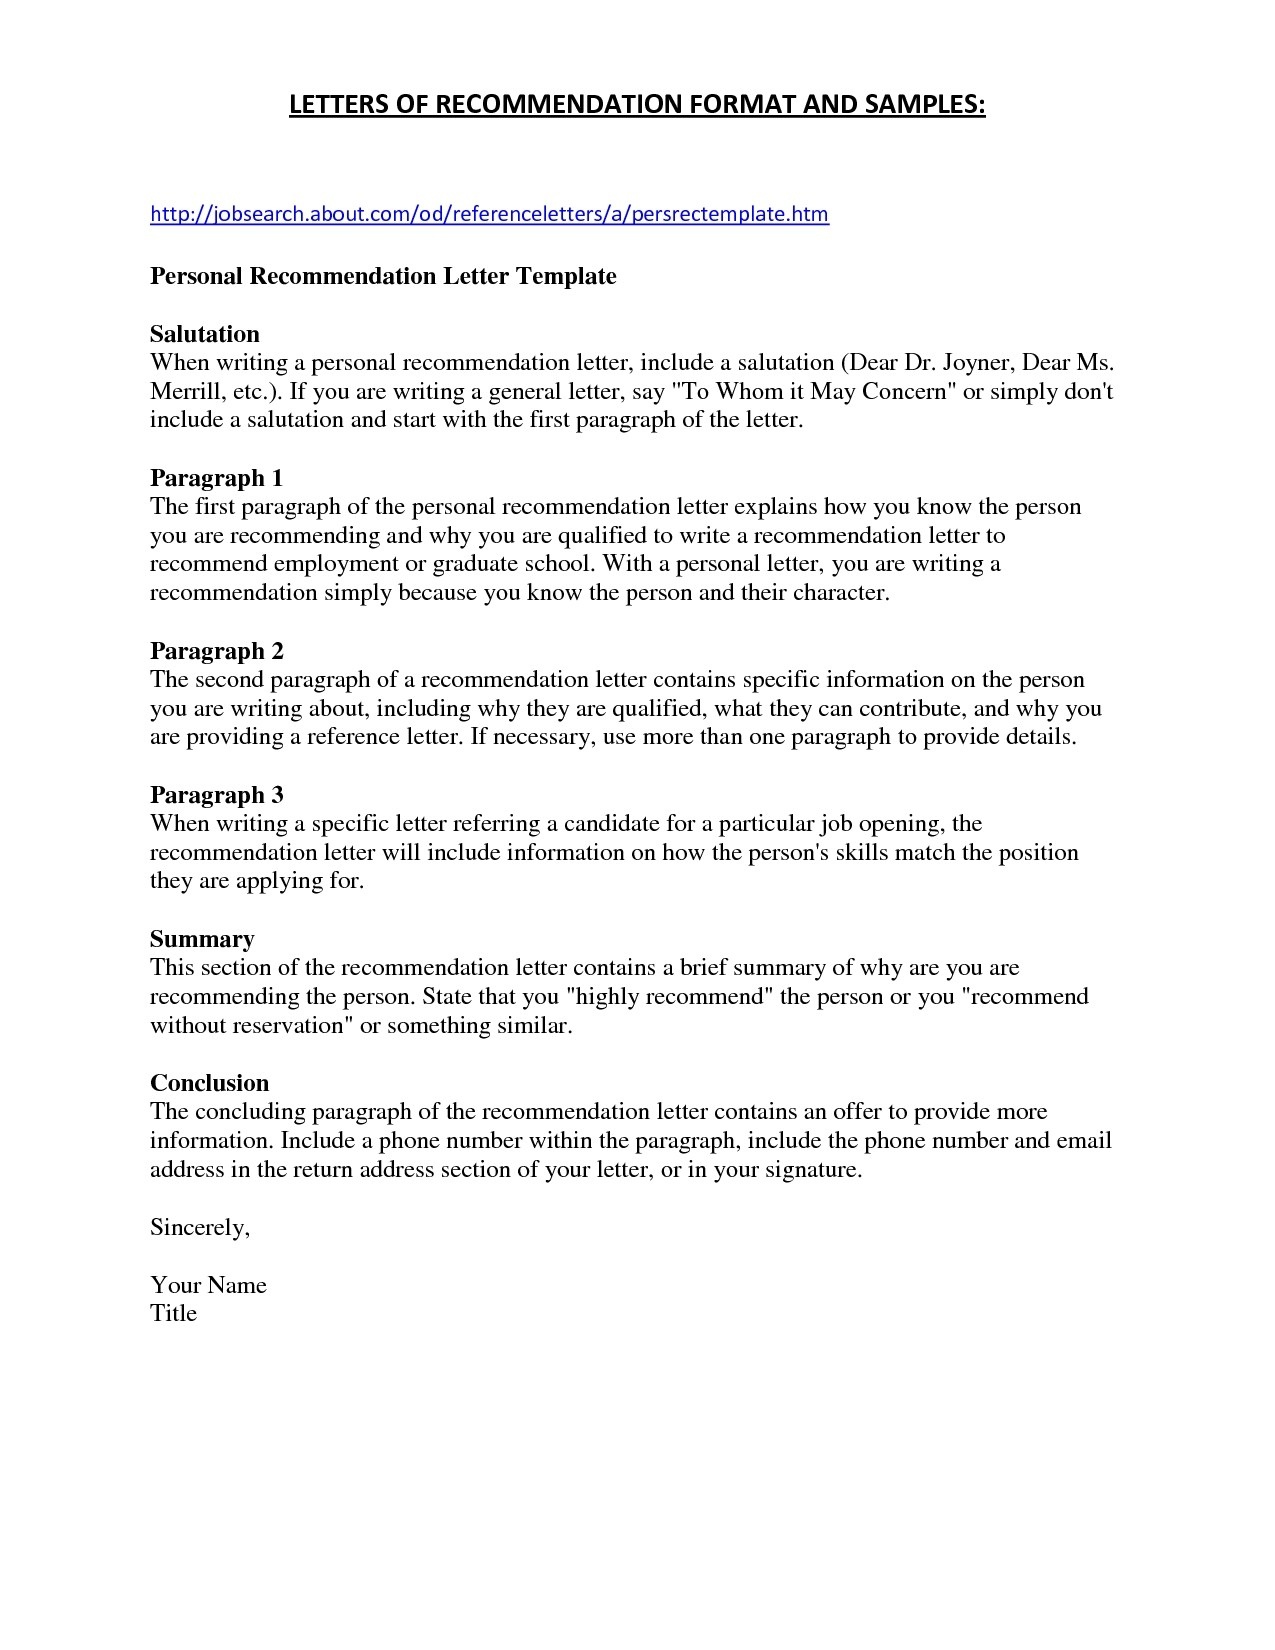 Law School Letter Re mendation Template Collection